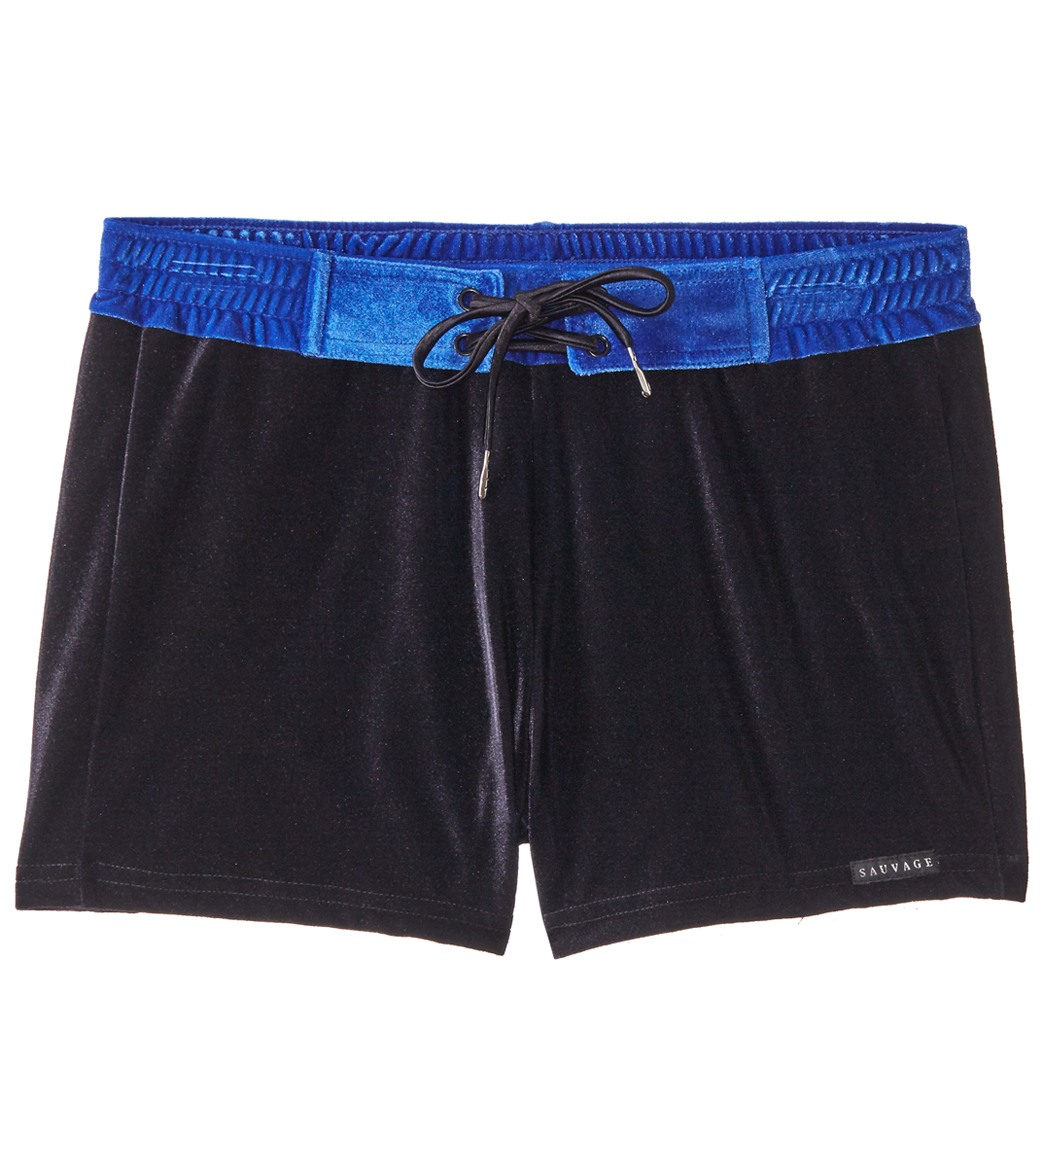 87ac3a4995463 Sauvage Velvet Swim Trunk at SwimOutlet.com - Free Shipping